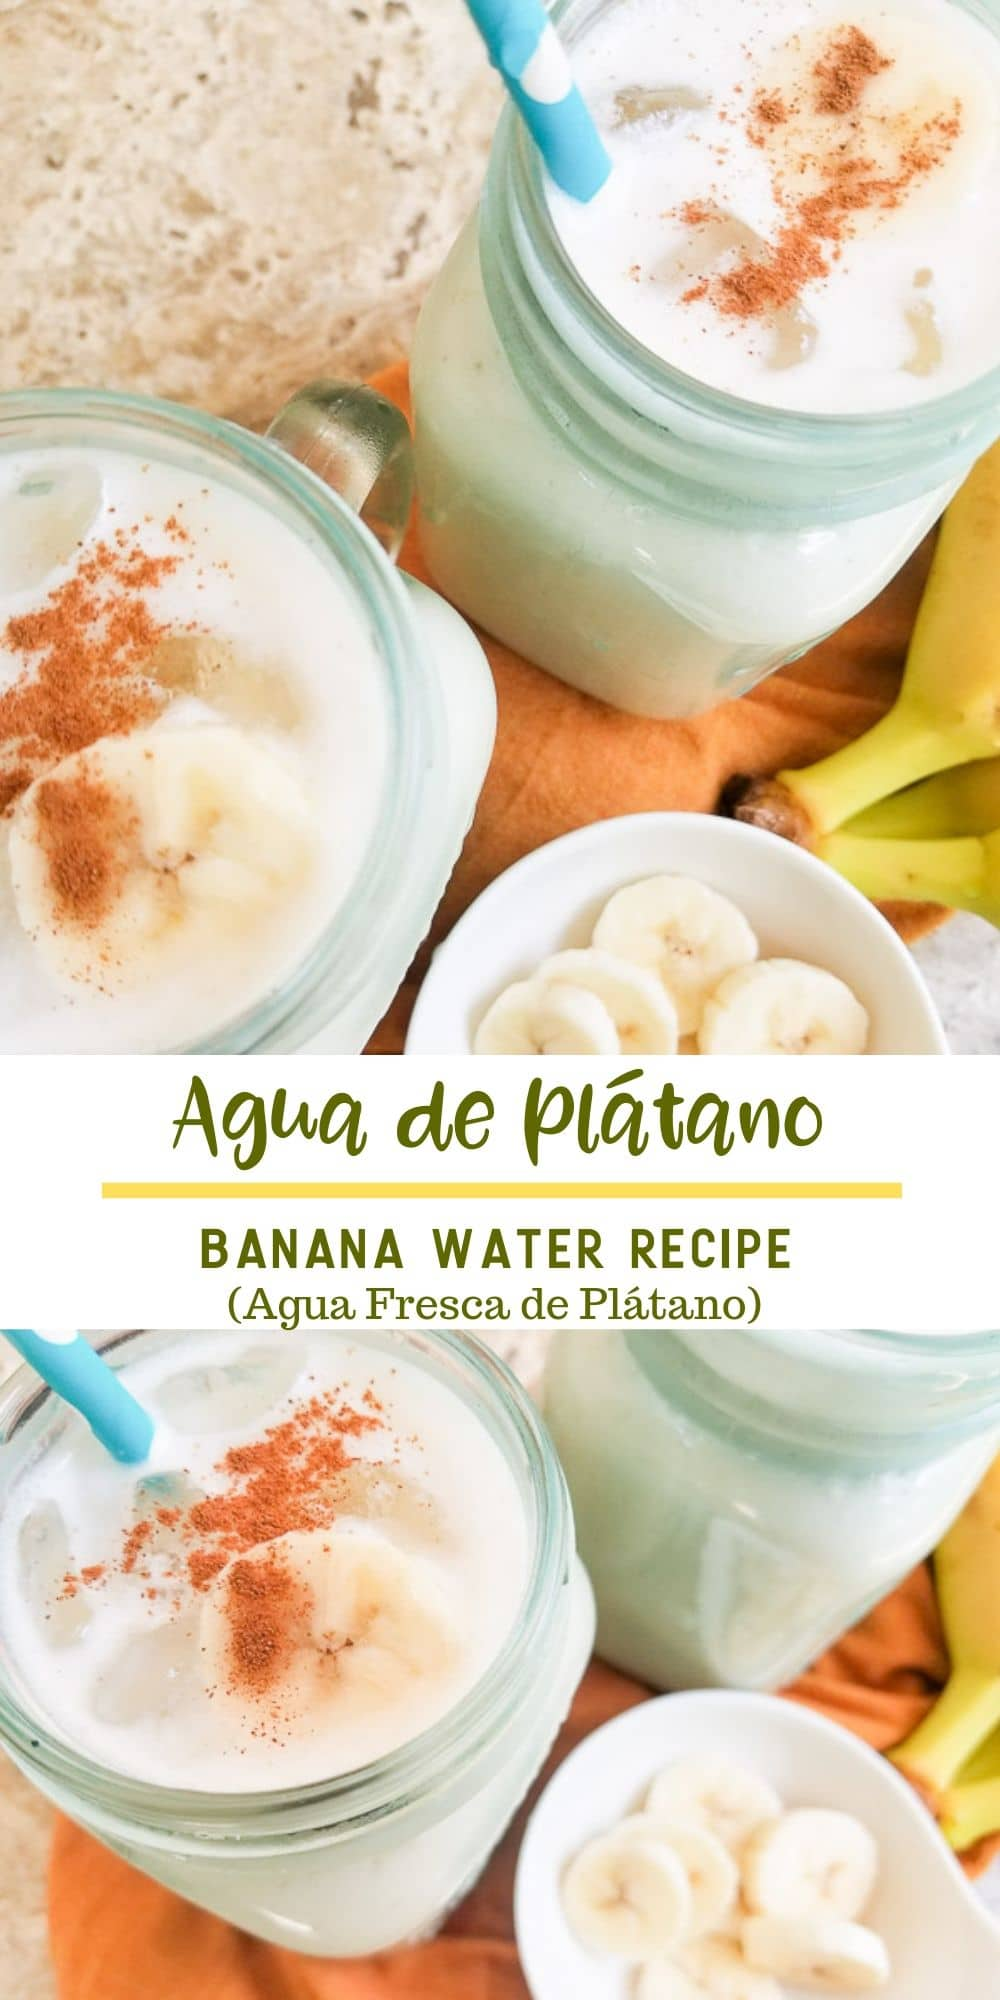 Agua de Plátano (Banana Agua Fresca) is a delicious refreshing drink made with a few simple ingredients and perfect anytime of the year especially on hot summer days! #aguadeplatano #bananaaguafresca #bananarecipes #bananasmoothies #mexicandrinks